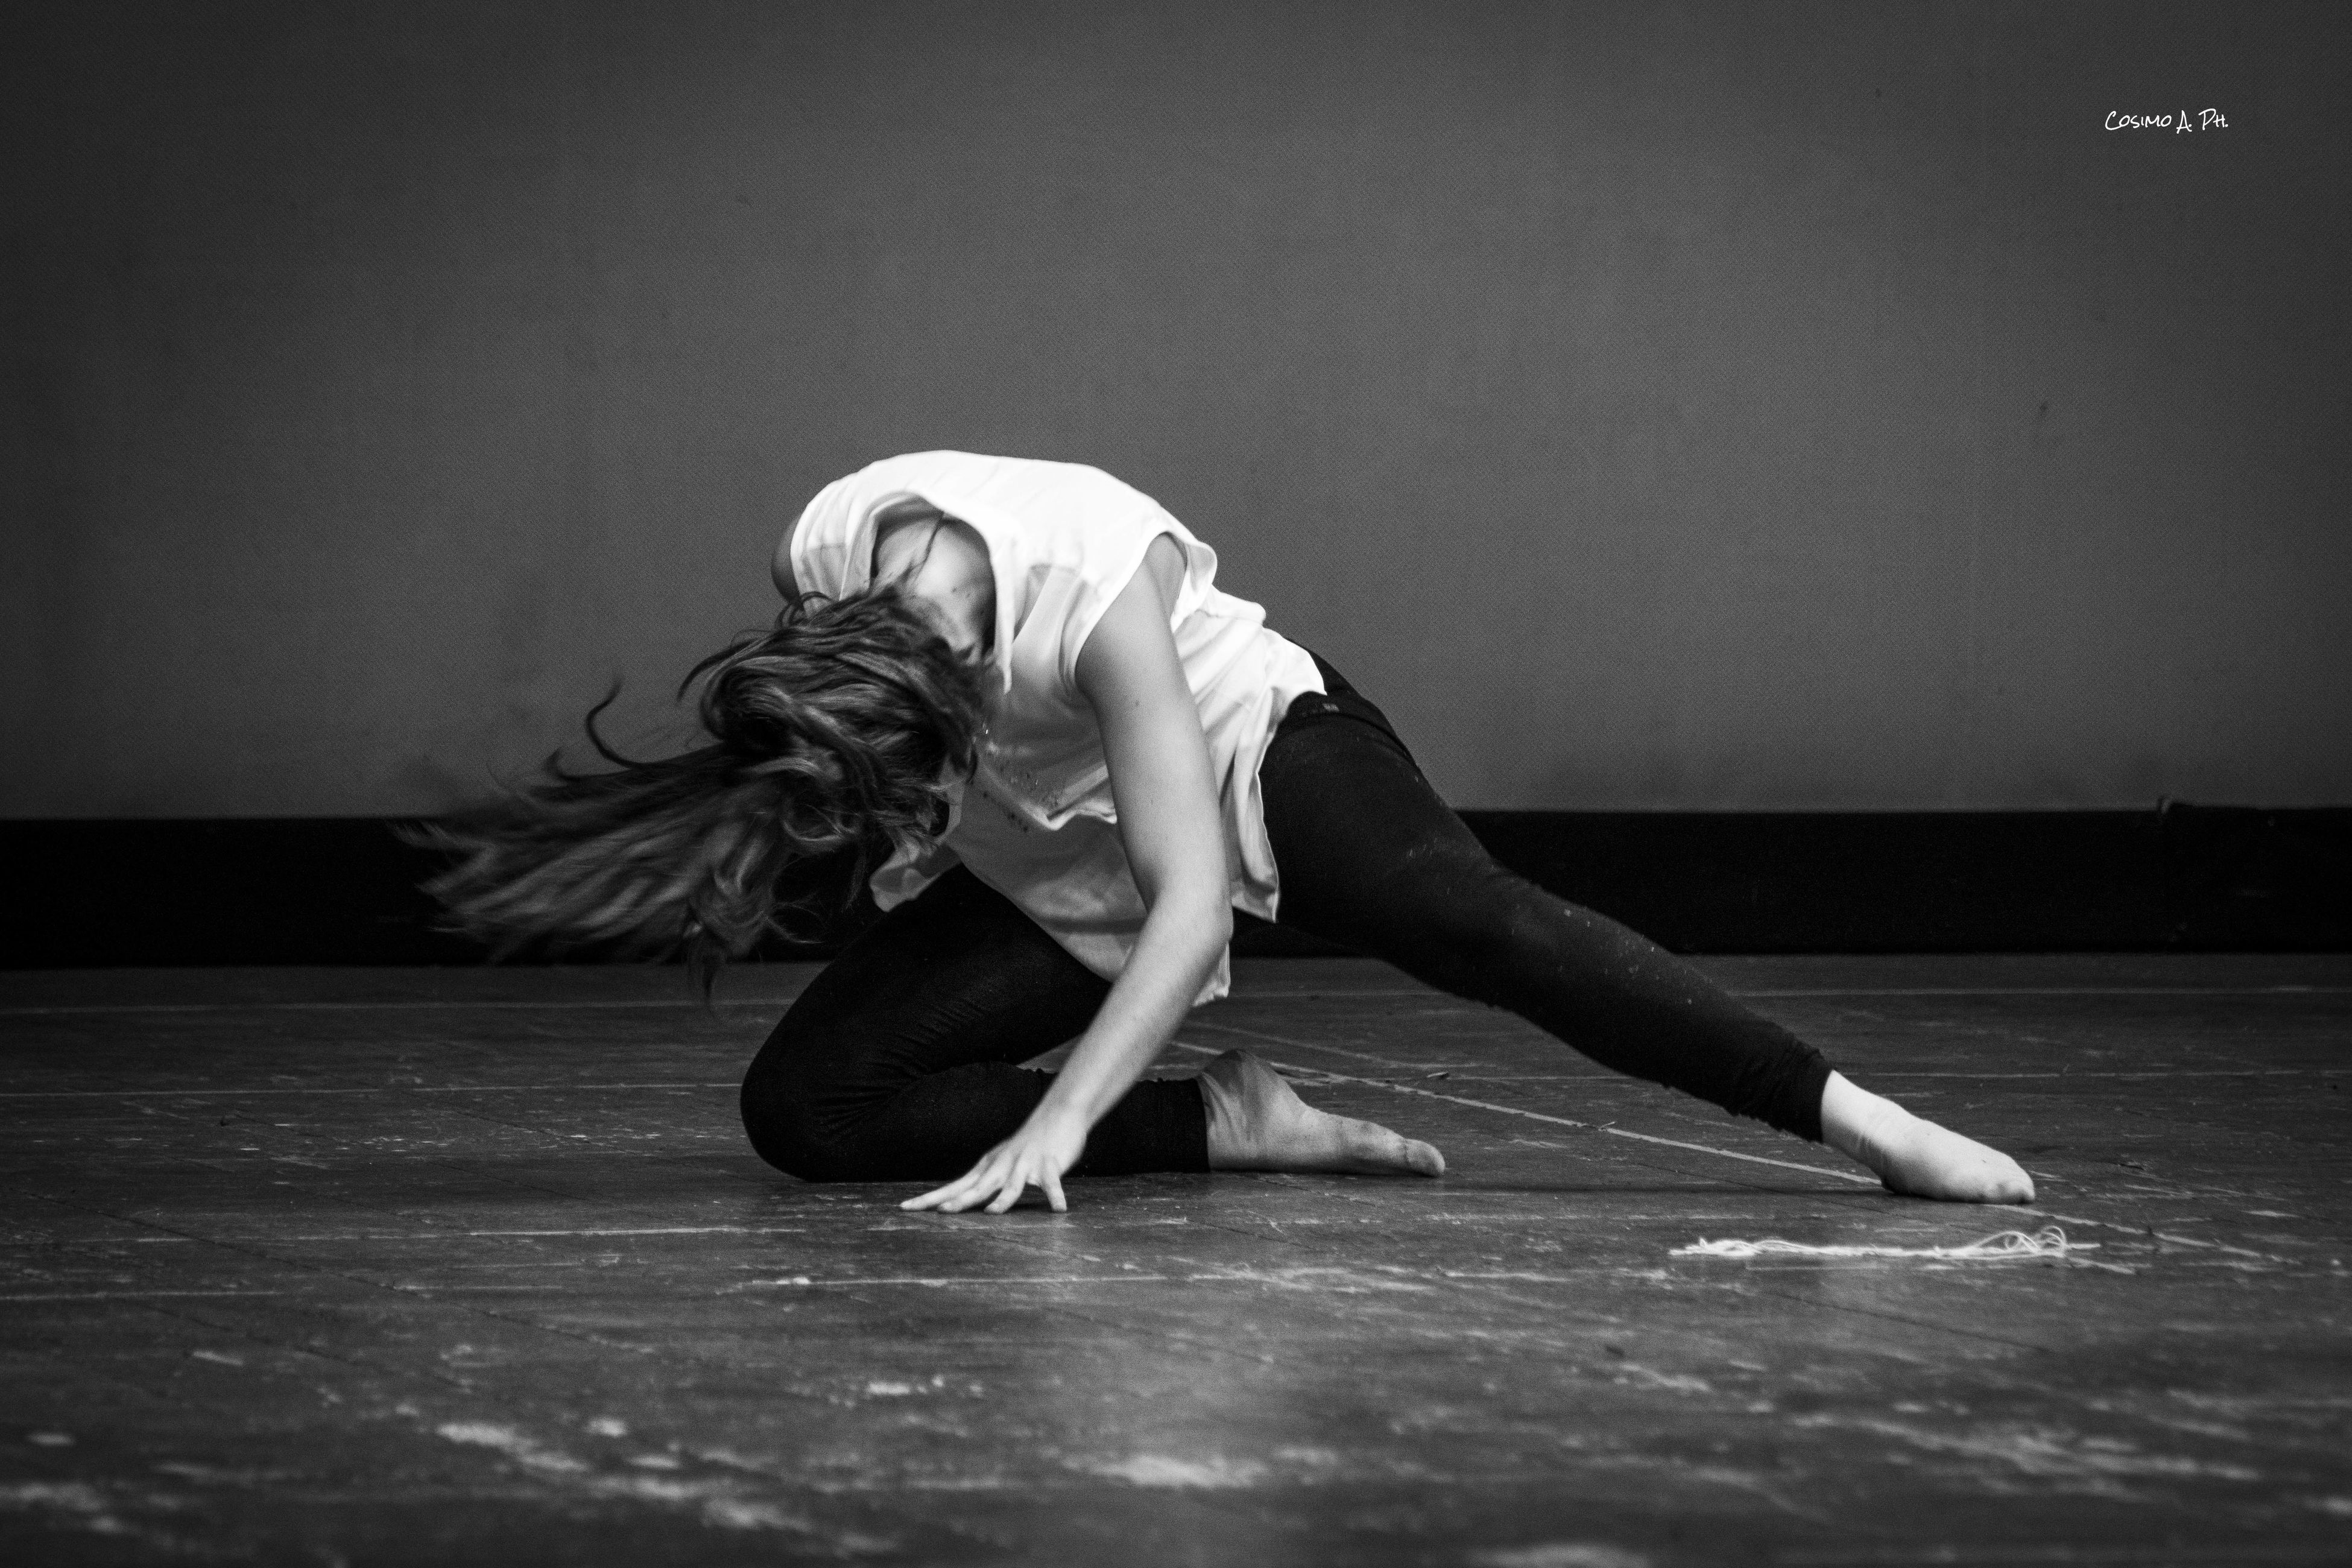 skill, indoors, real people, one person, flexibility, balance, practicing, performance, dancer, exercising, lifestyles, full length, ballet dancer, women, young women, young adult, day, people